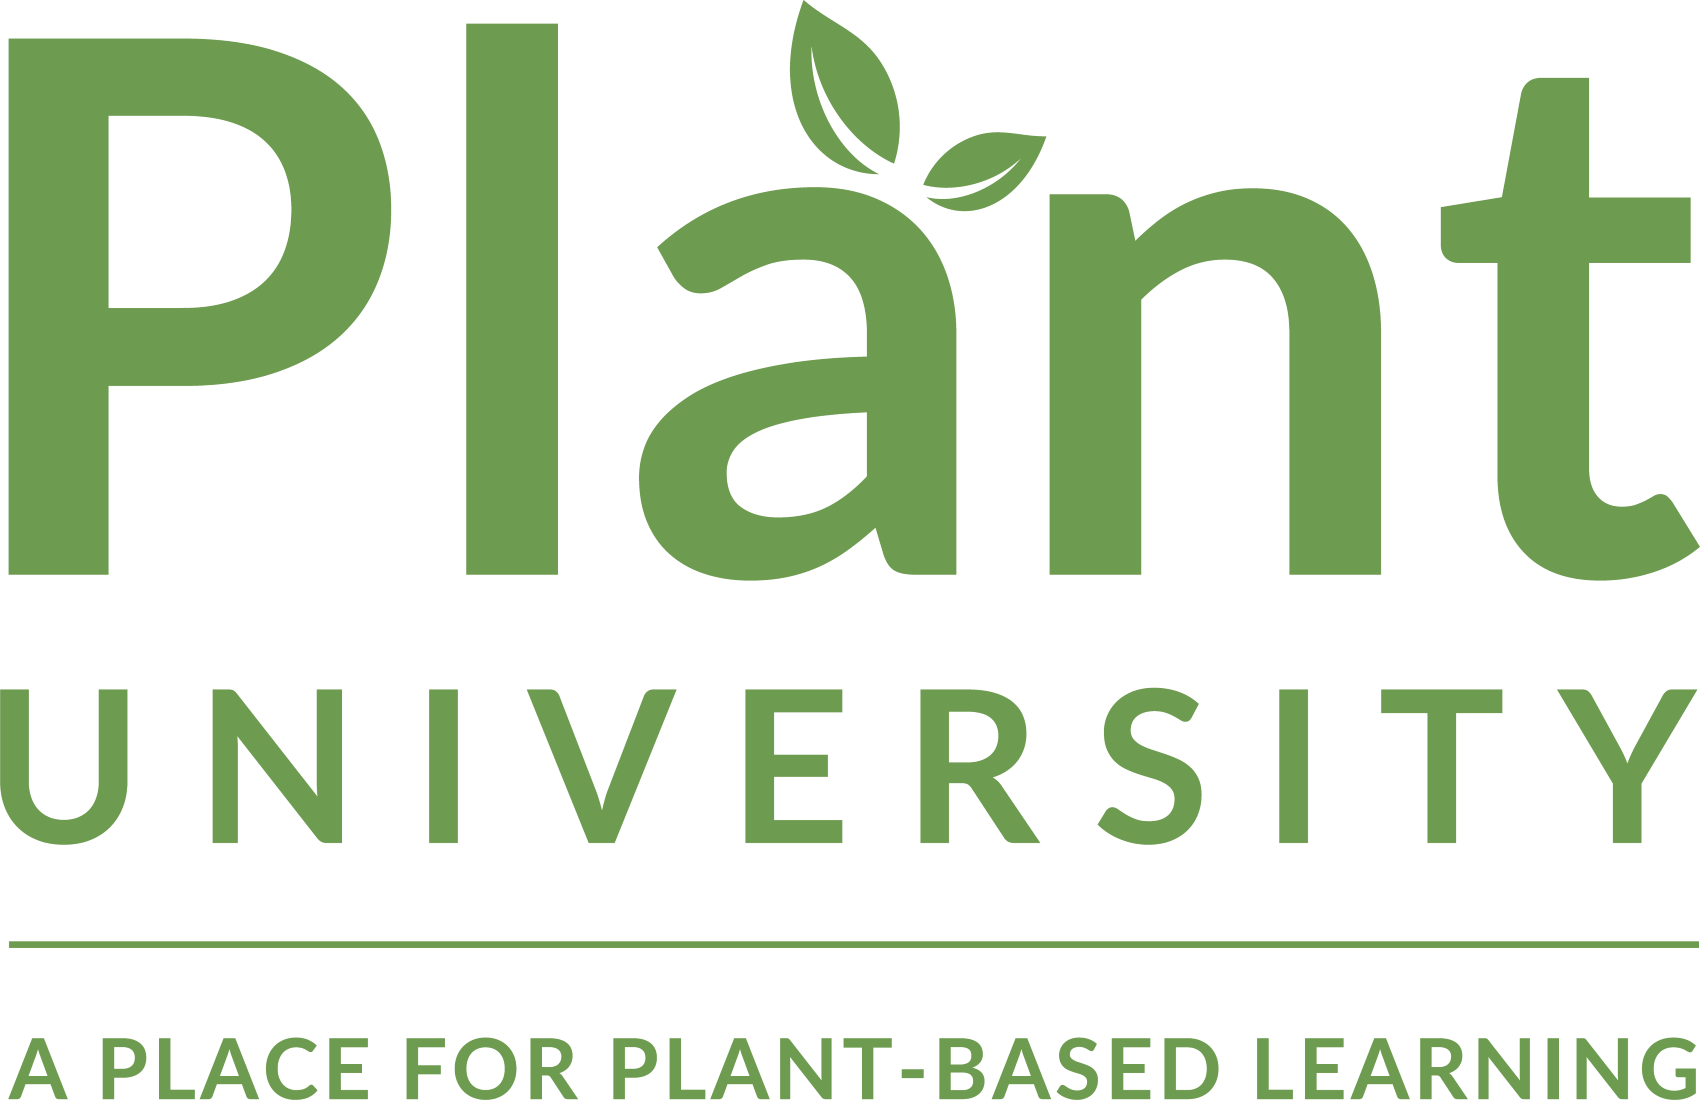 Logo for PlantUniversity, a place for plant-based learning